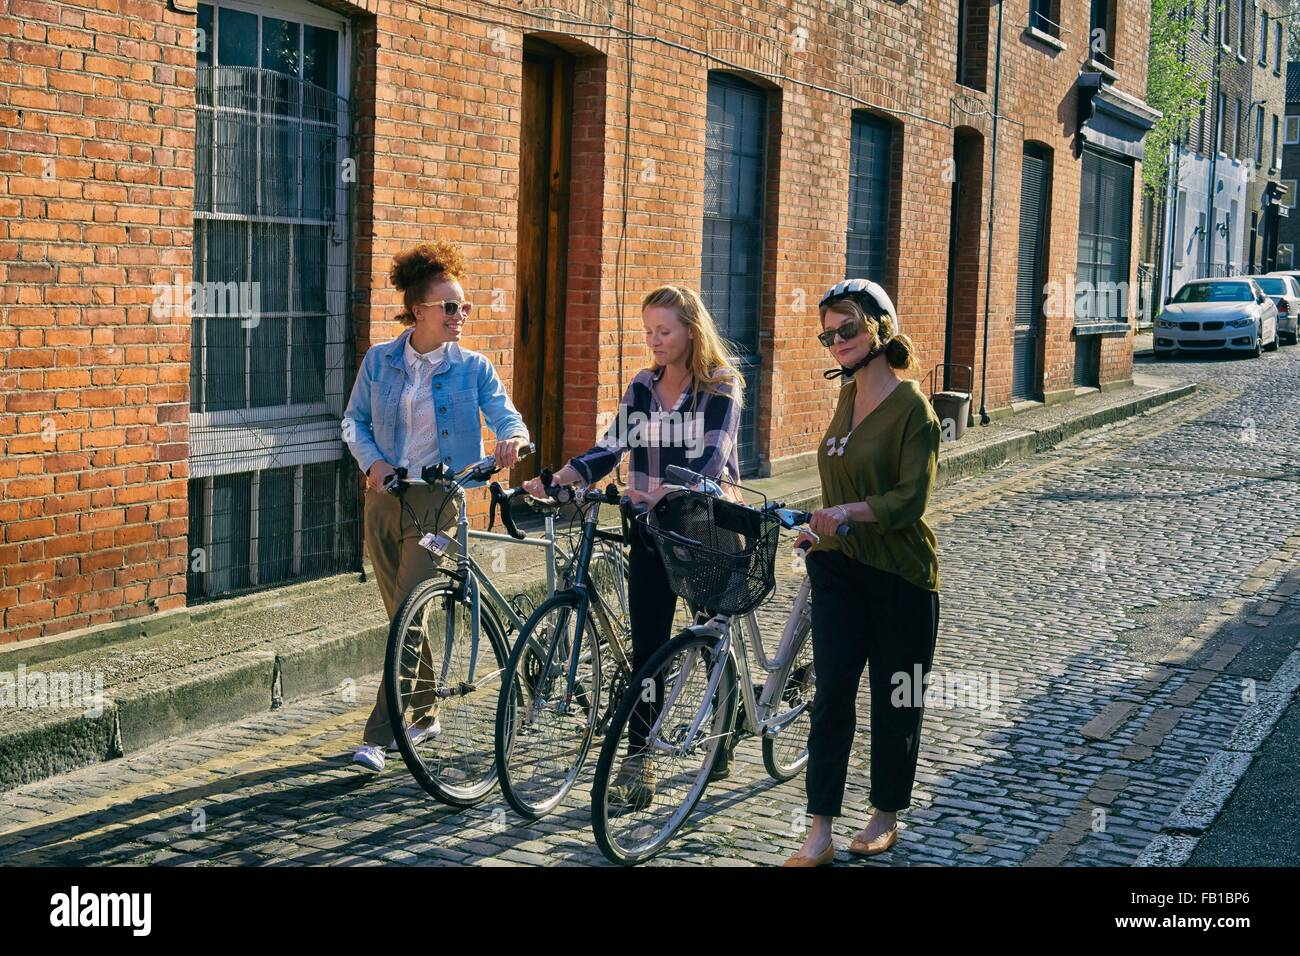 Angled view of women in urban area pushing bicycles on cobblestone road - Stock Image